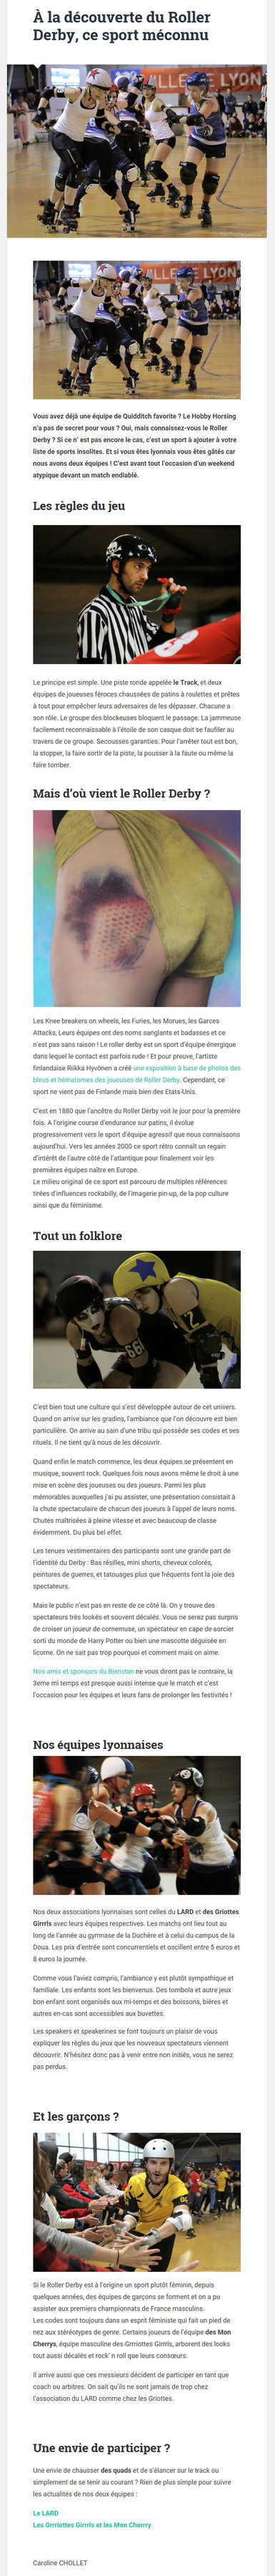 Article sportif optimisé pour le web